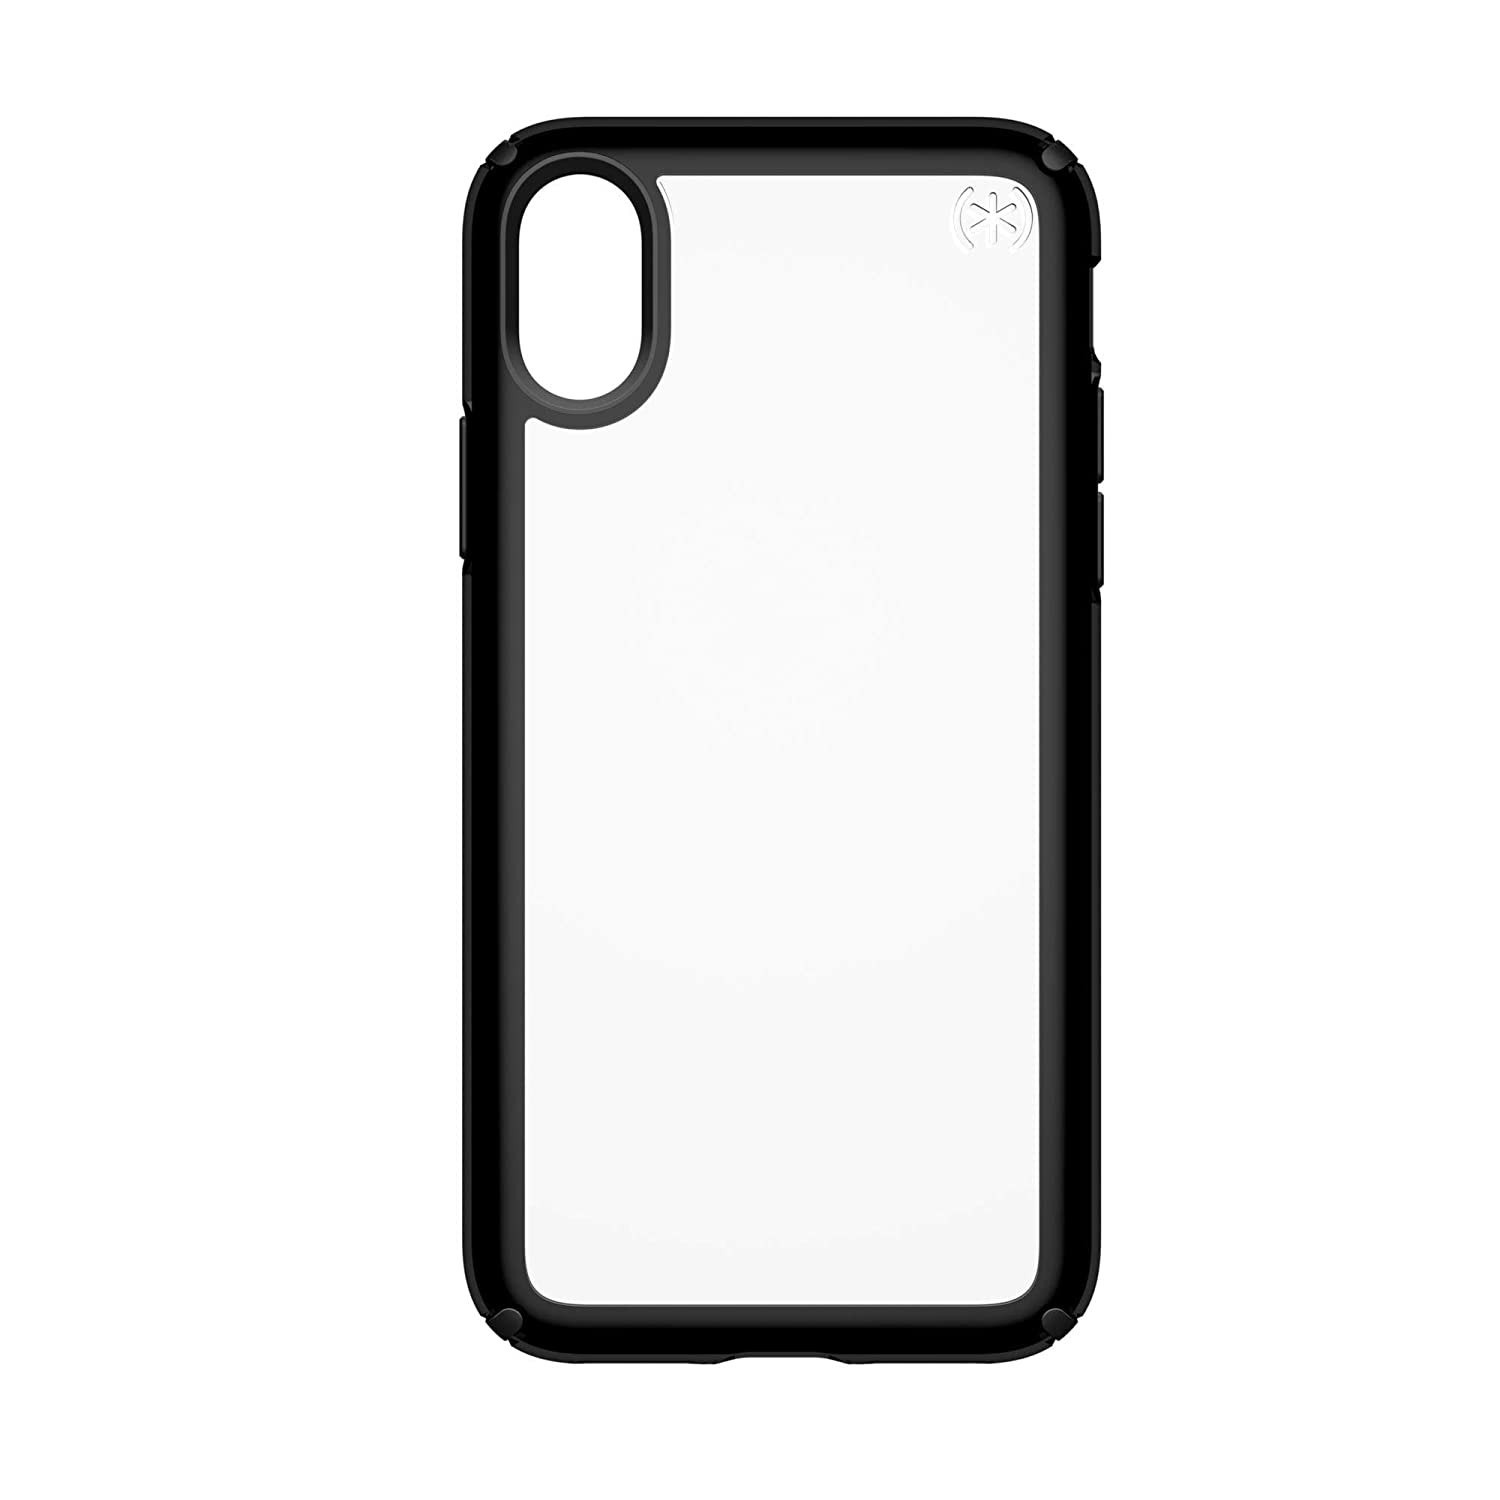 buy online 40487 b841a Speck Products Presidio Show Case for iPhone XS/iPhone X, Clear/Black